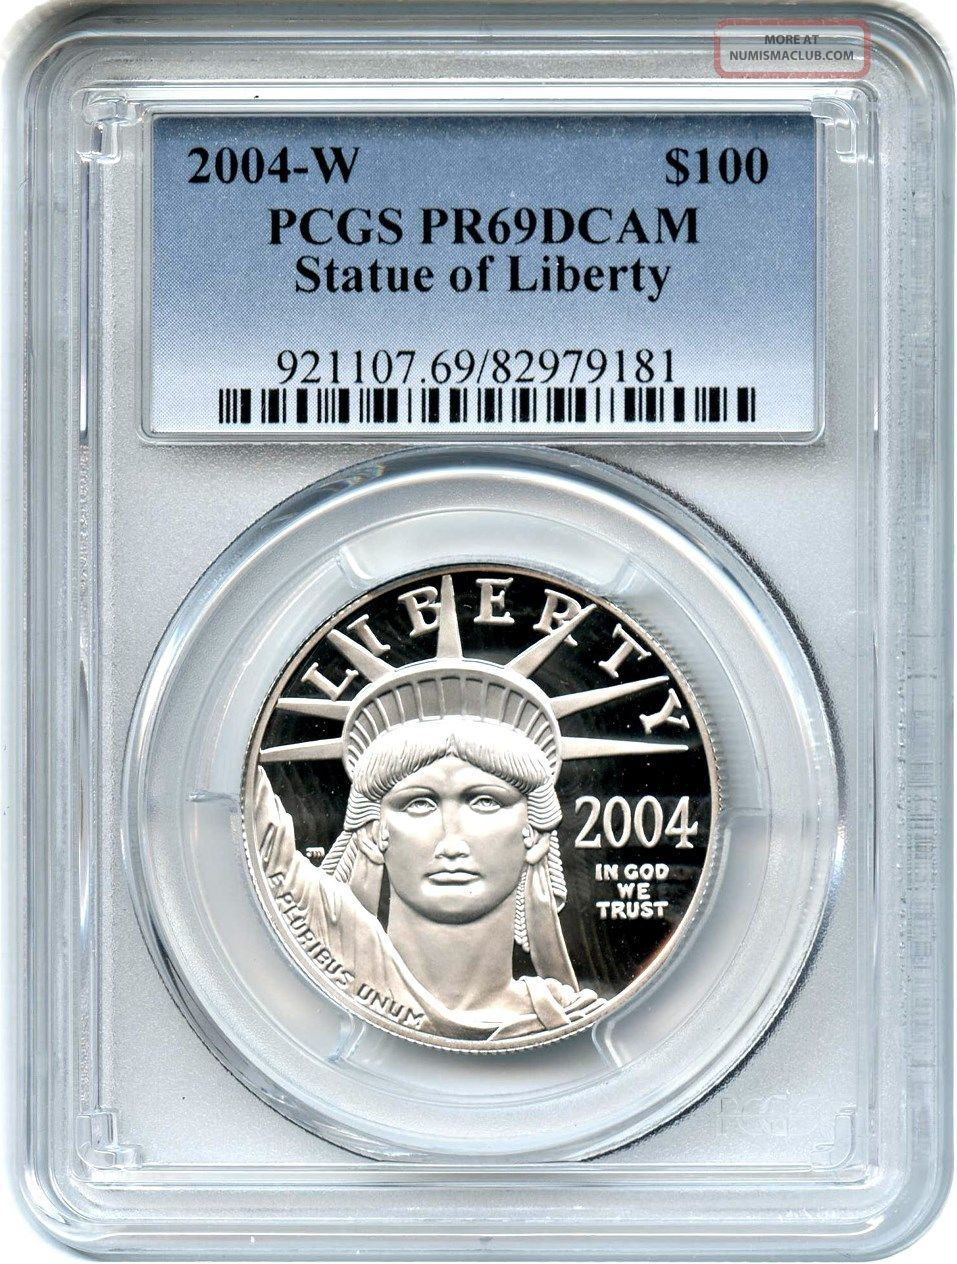 2004 - W Platinum Eagle $100 Pcgs Pr 69 Dcam - Statue Liberty 1 Oz Platinum photo